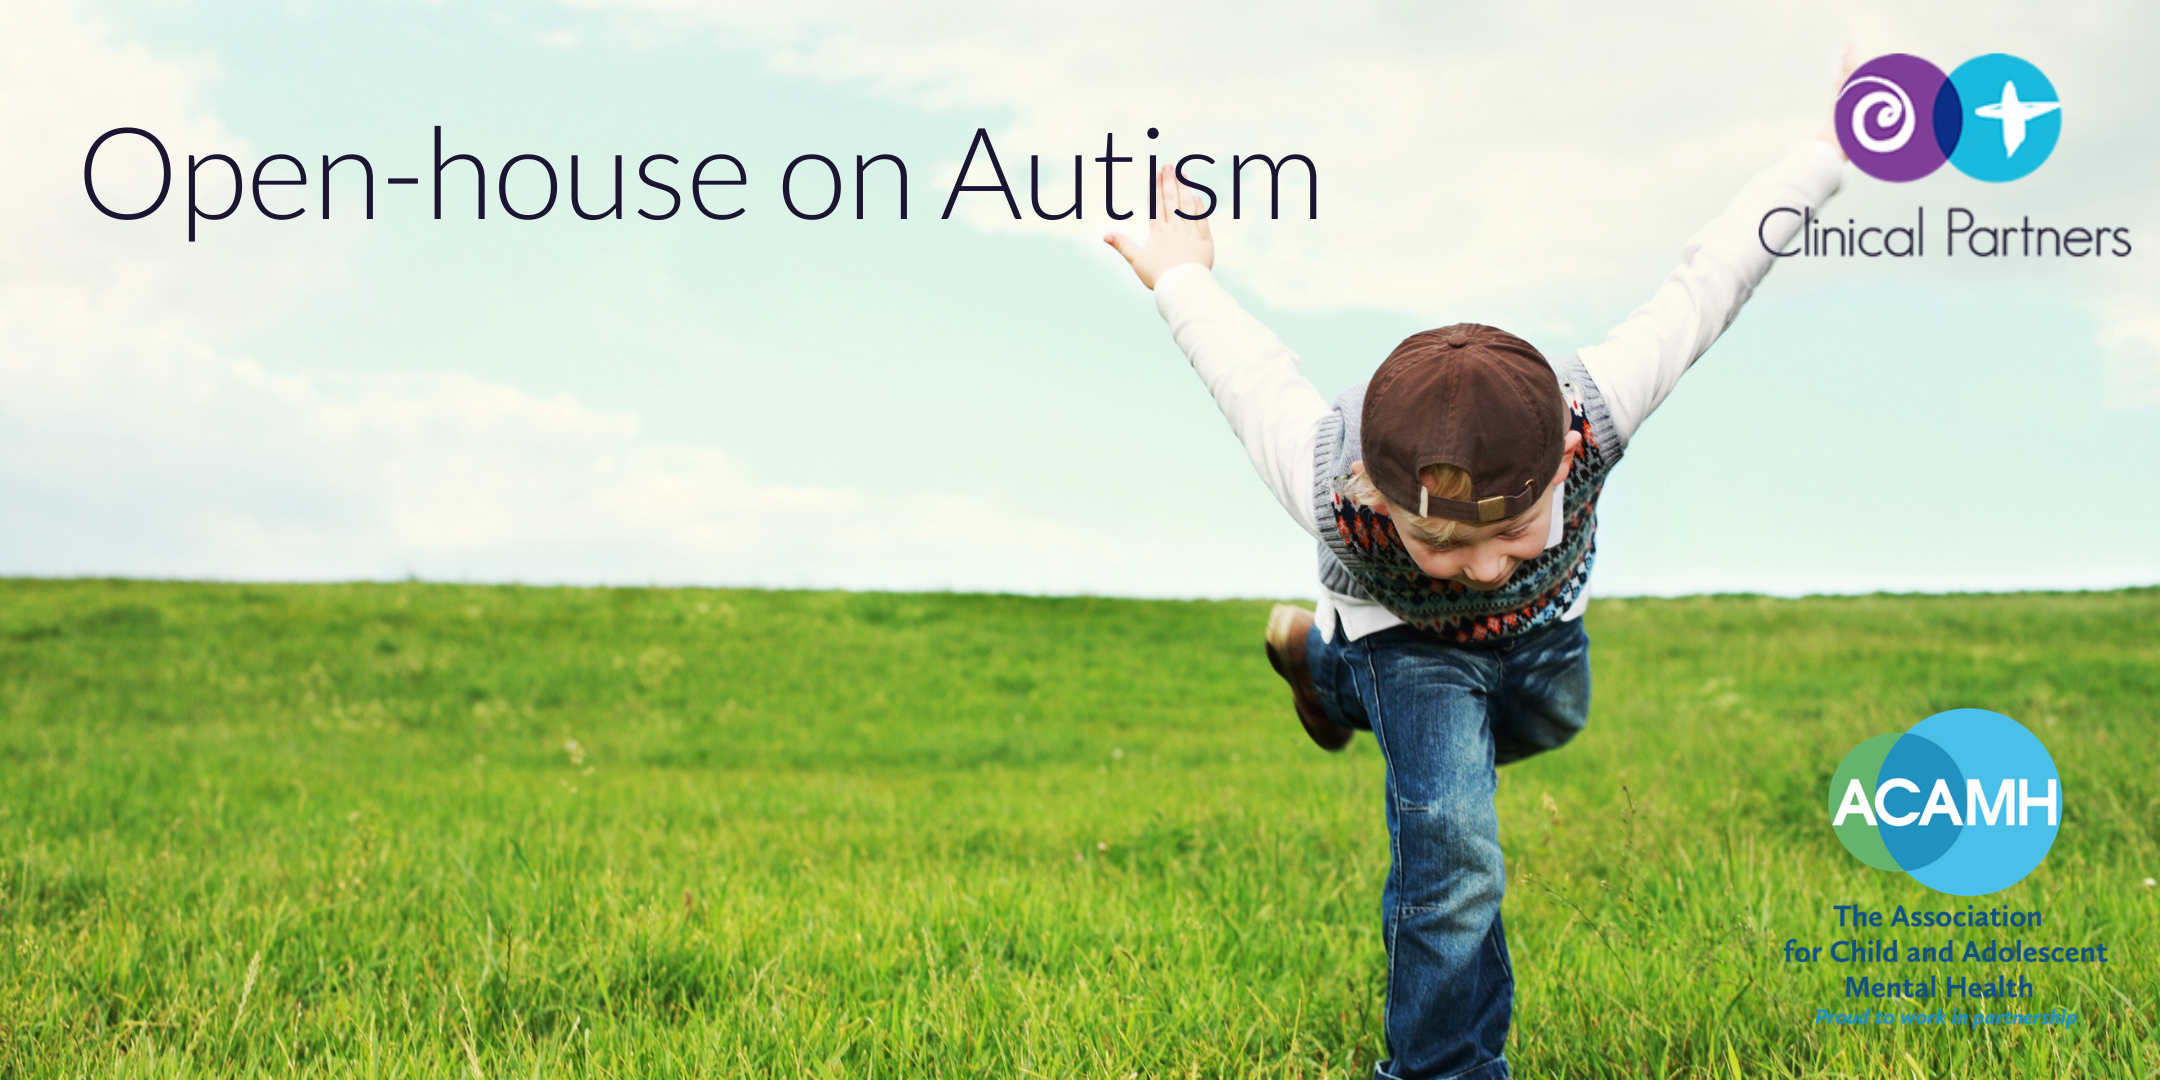 Copy of Openhouse on Autism 14